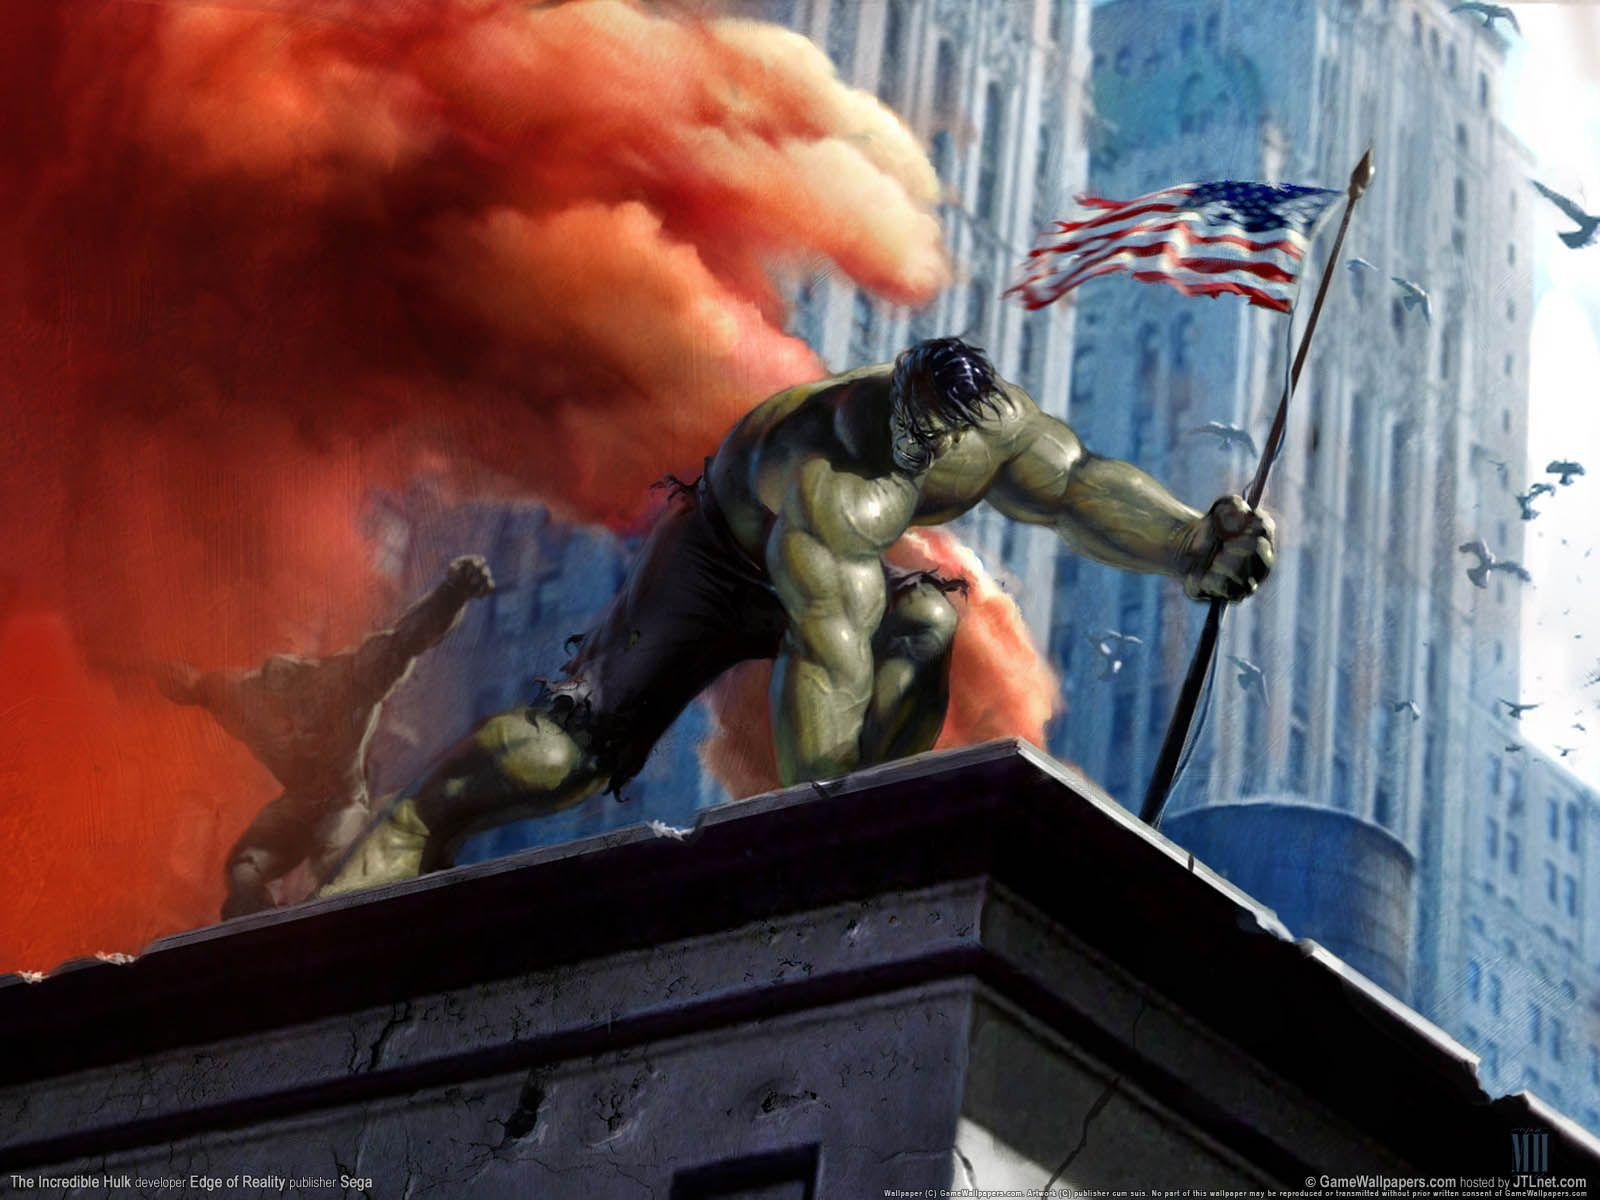 The Incredible Hulk - Games Wallpapers | Best HD Wallpapers ...